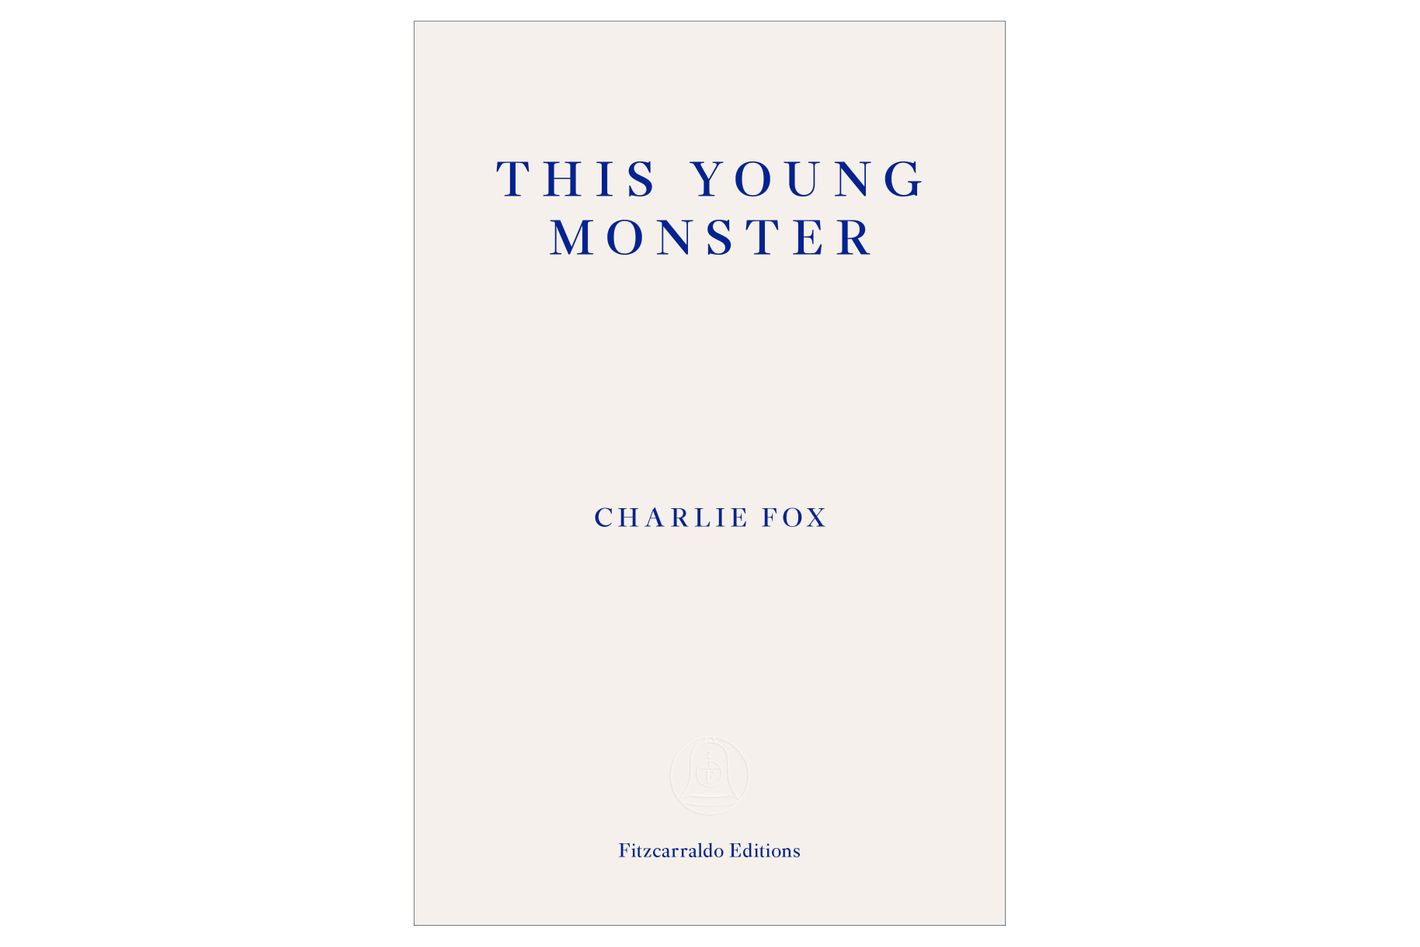 The Young Monster by Charlie Fox